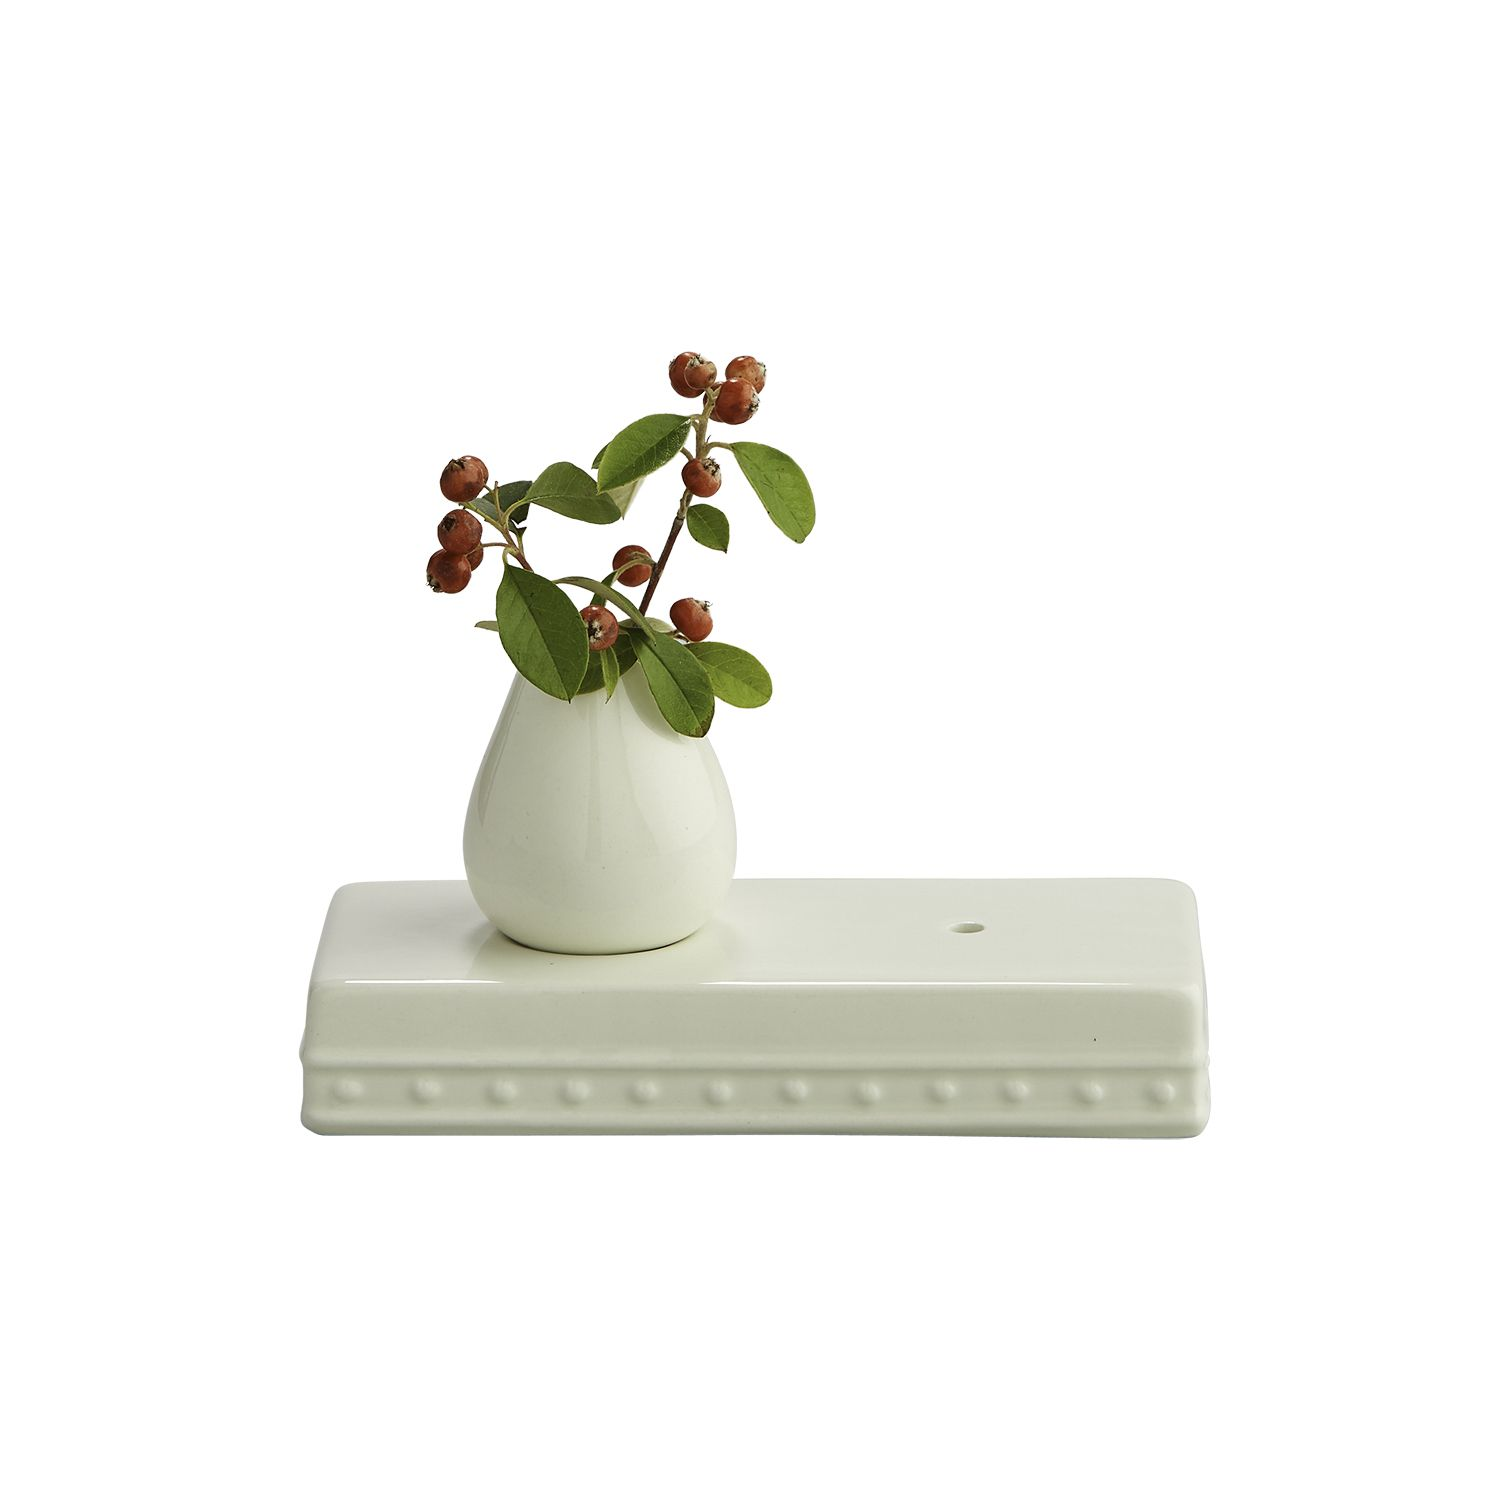 Wedding Gift Registry Ireland: This Adorable Little Bud Vase Holds A Sweet Little Bouquet